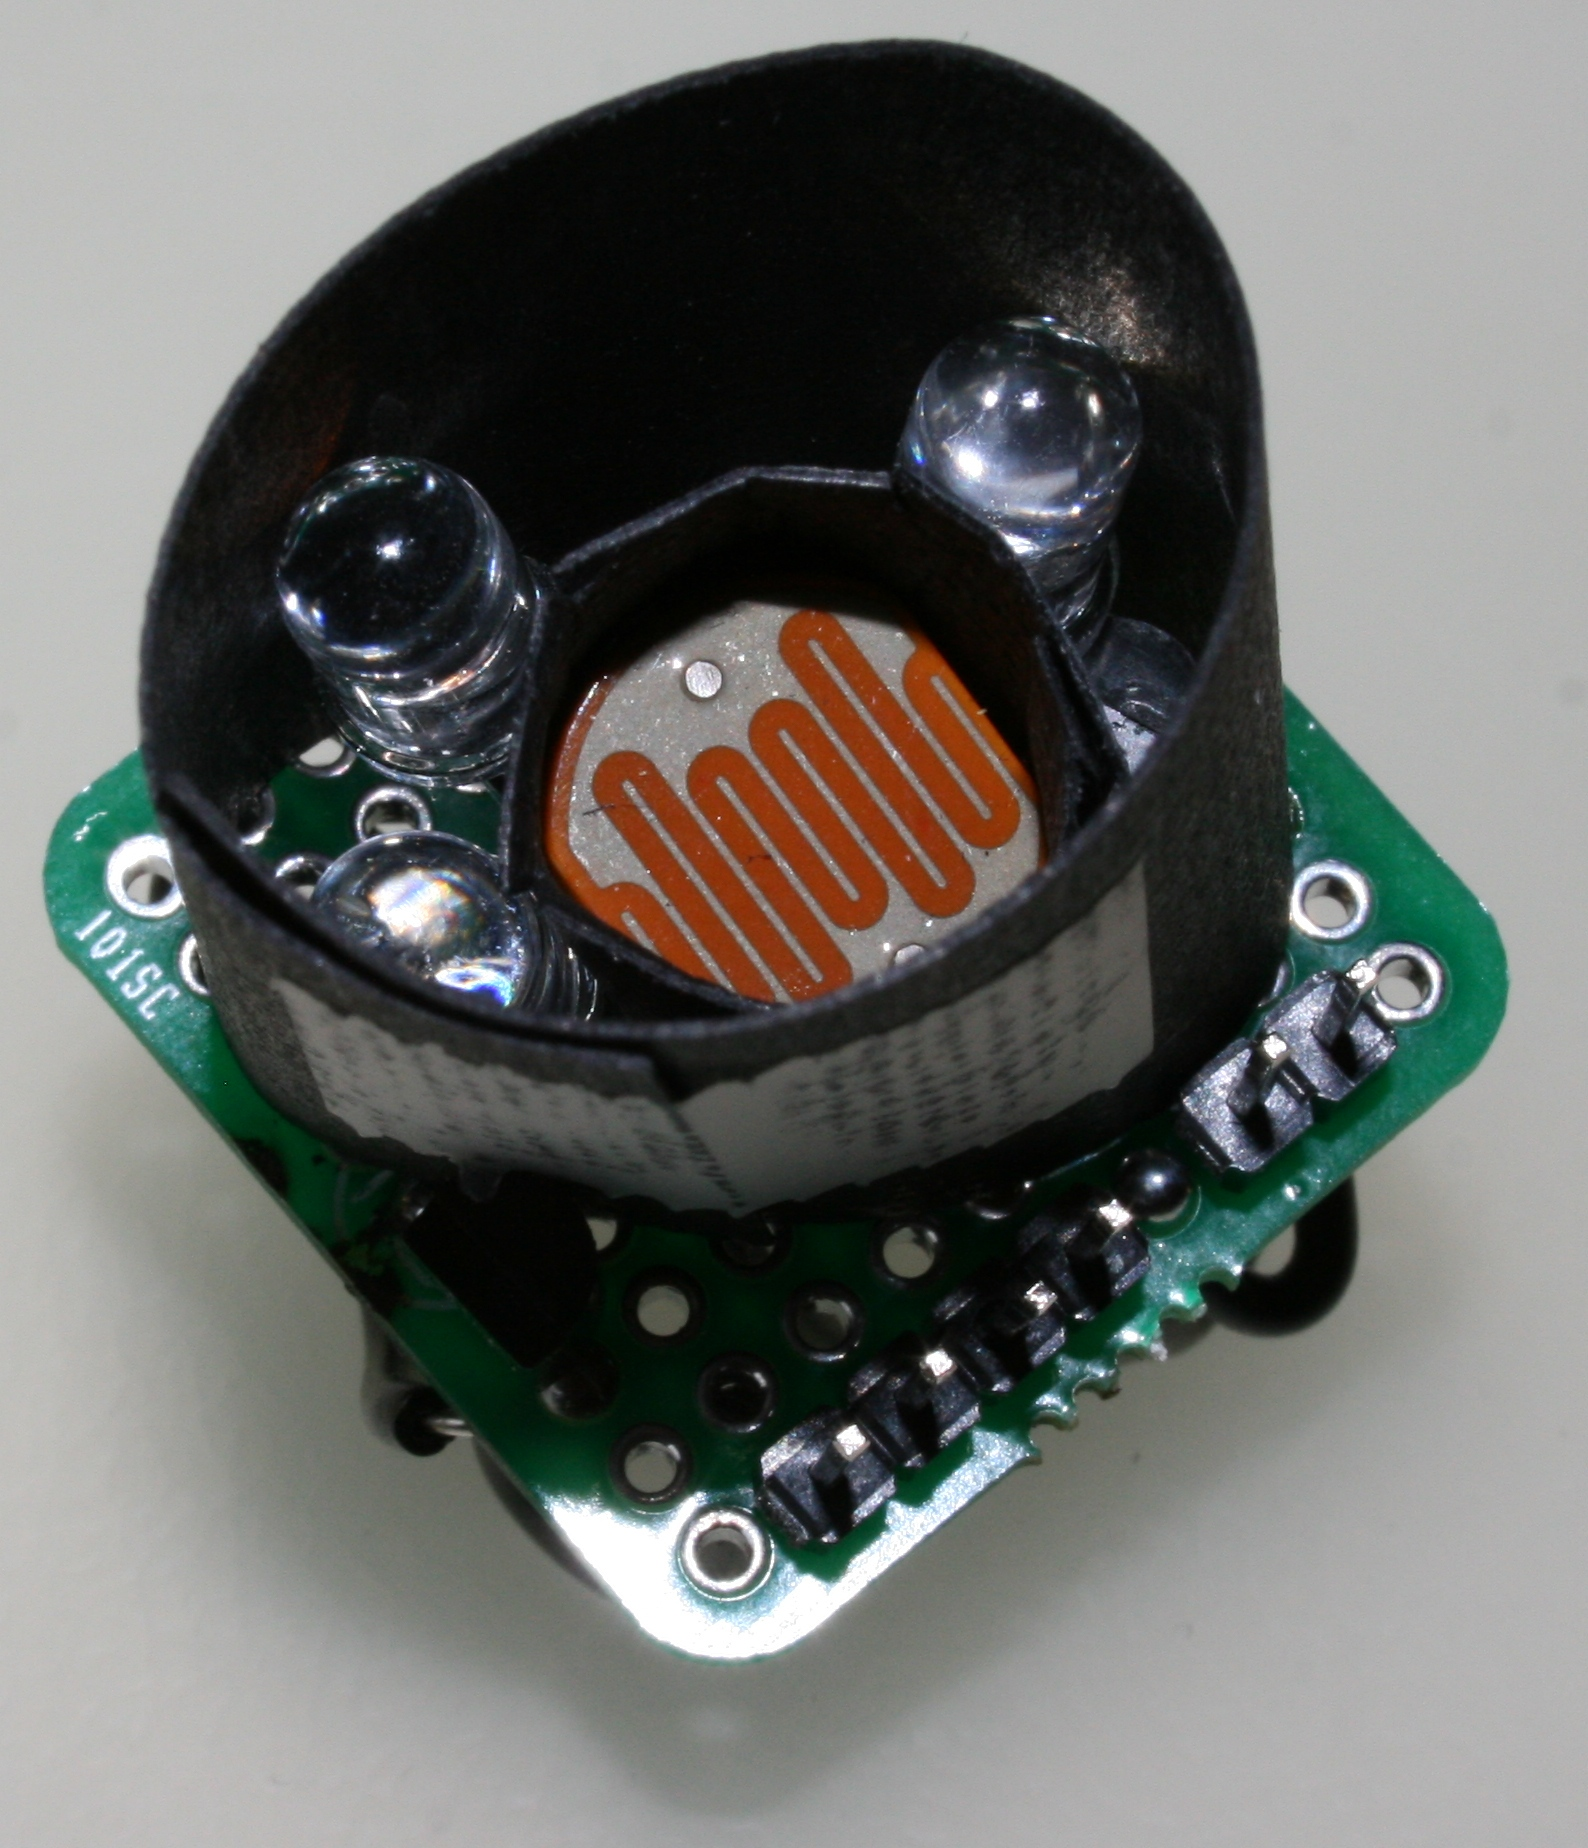 Color Sensor With Arduino Dr Ivans Blog The We Will Use In This Circuit Is A Tcs3200 Fully Assembled Showing Main Components Behind Cardboard